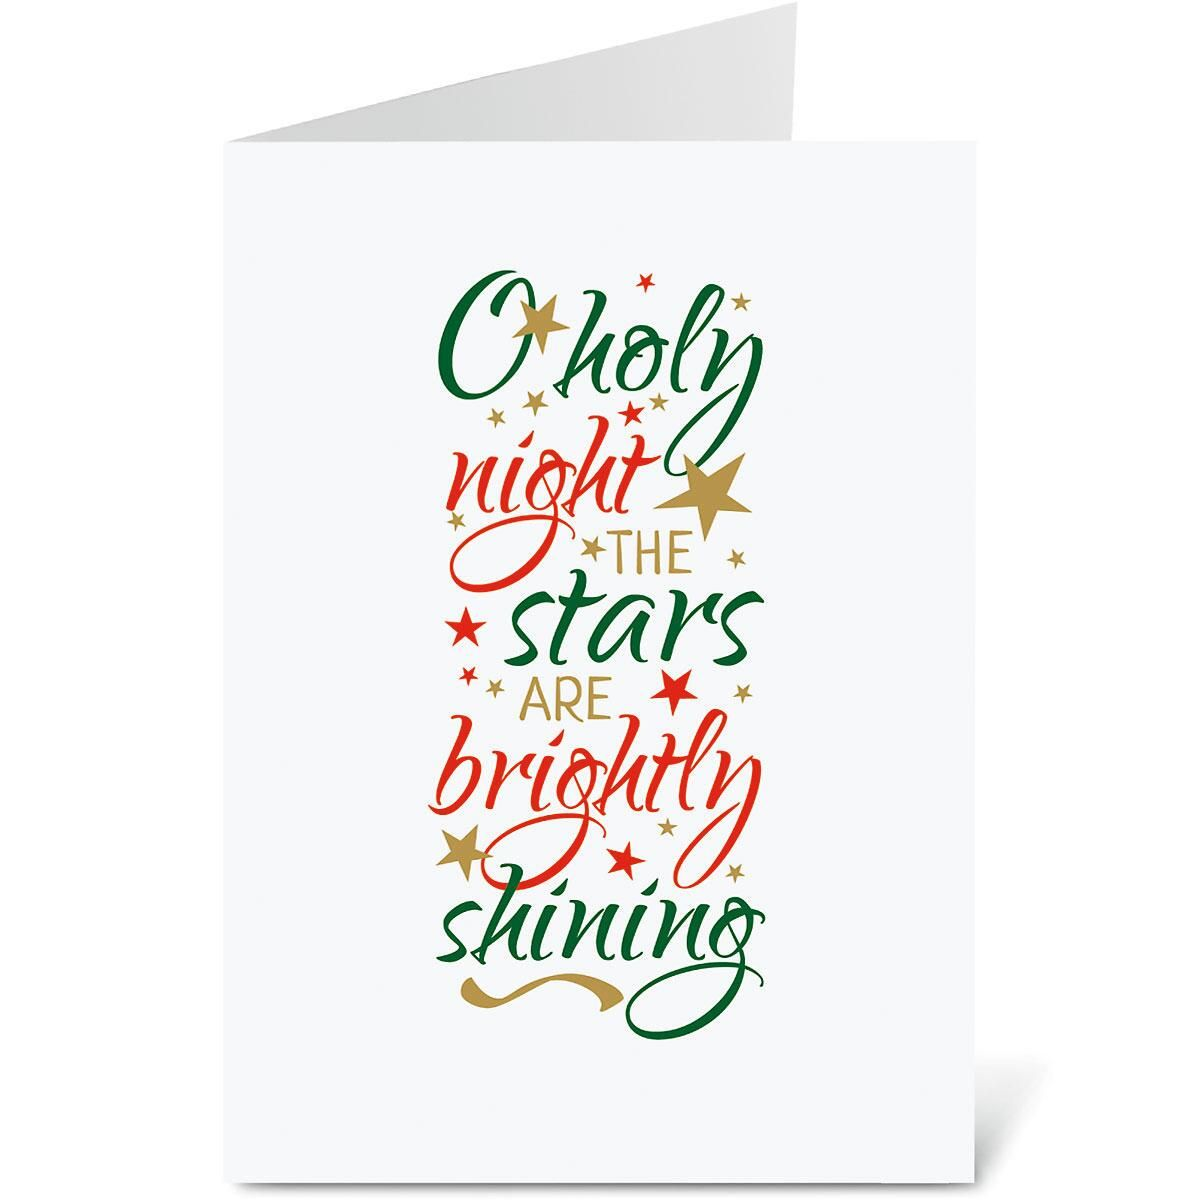 O Holy Night Personalized Christmas Cards - Set of 72